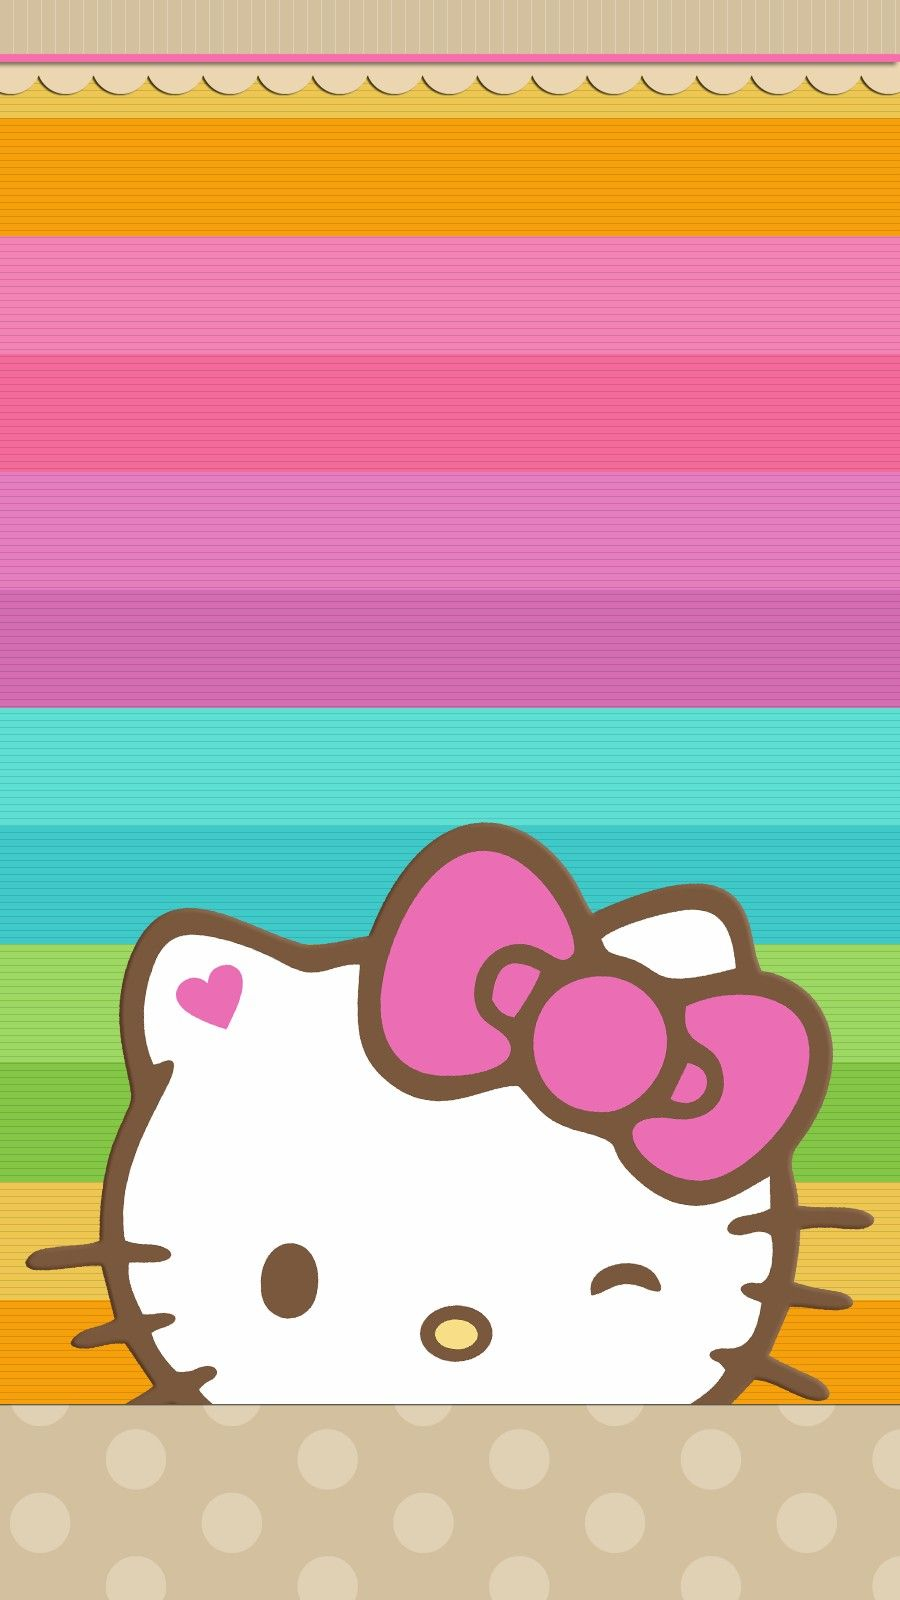 Pin by Angelmom4 on Cute Wallz Hello kitty iphone